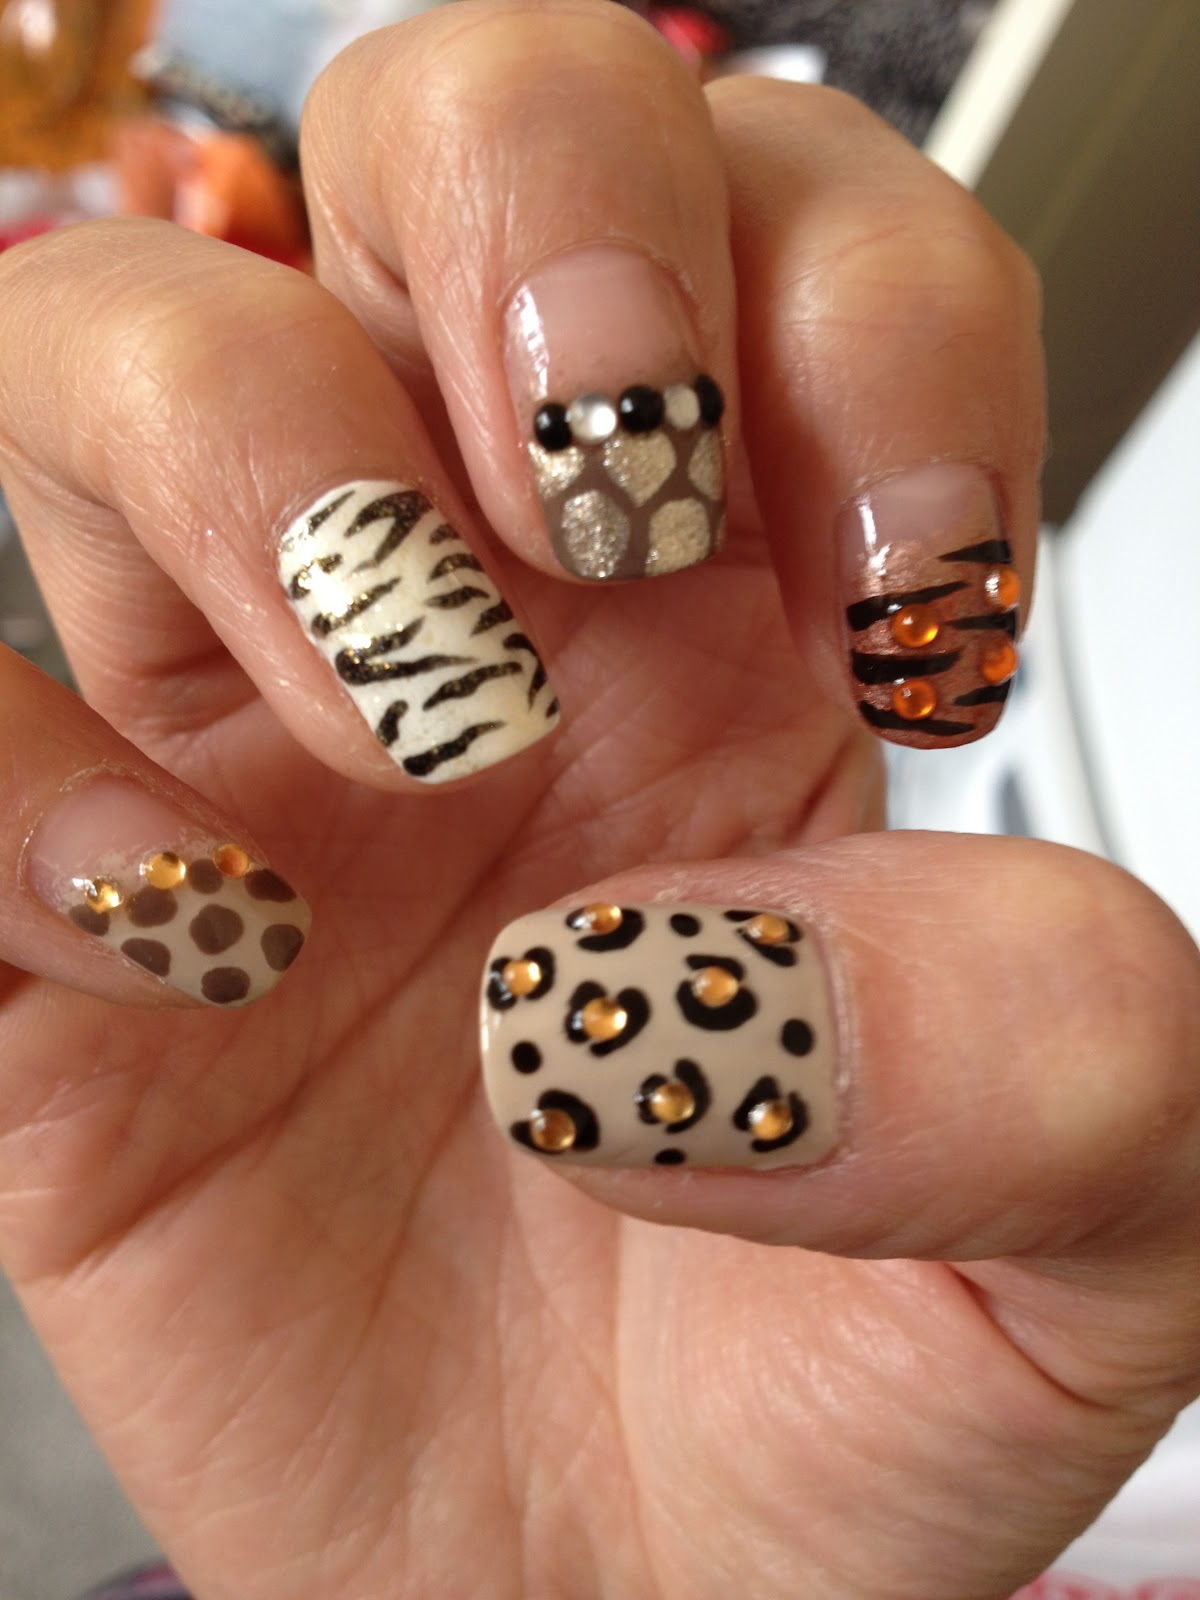 The Amazing Cheetah print nail designs 2015 Digital Imagery